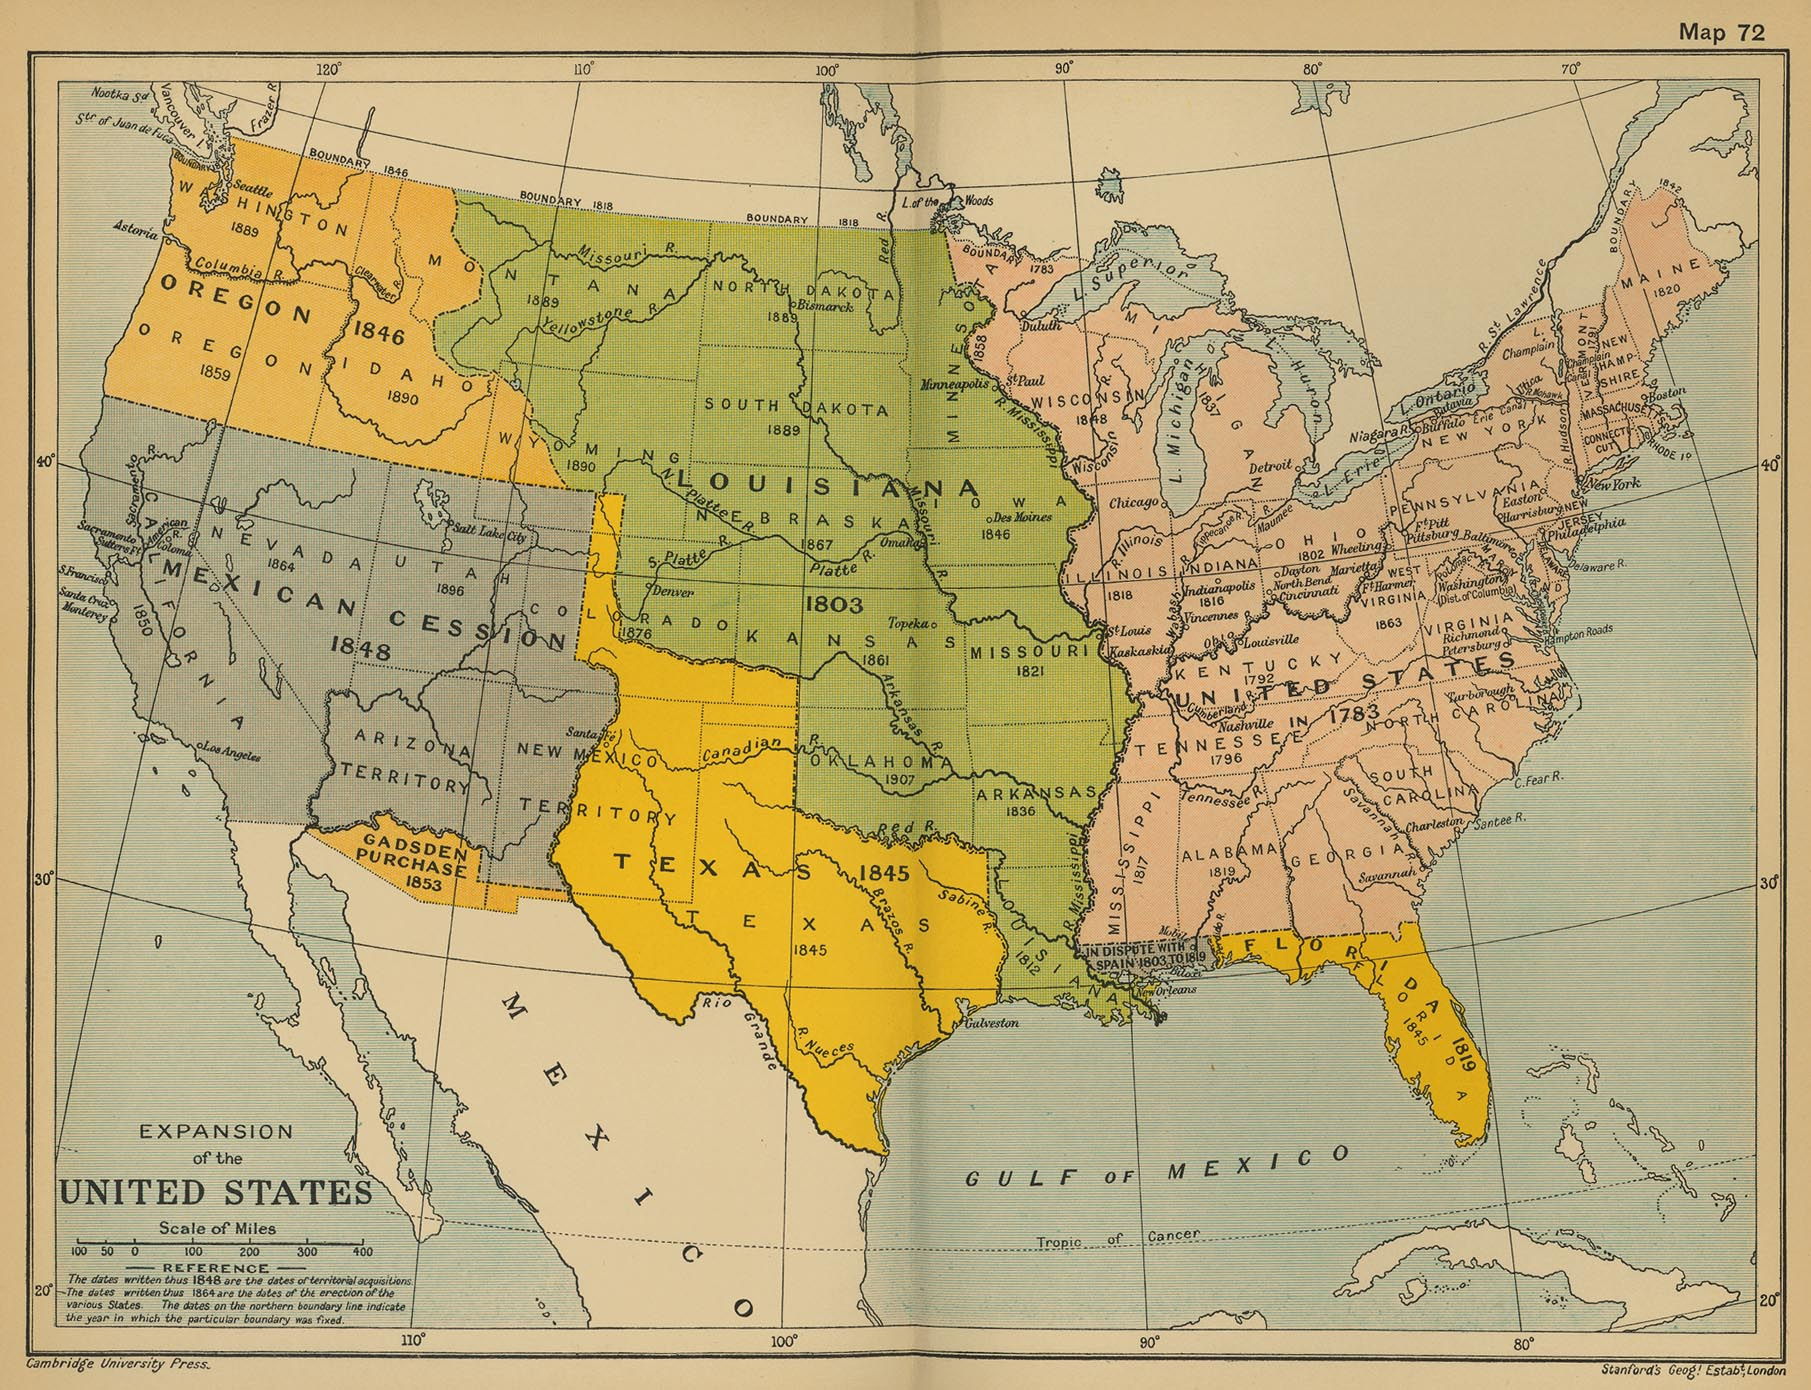 Historical map of the expansion of the united states 1783-1907